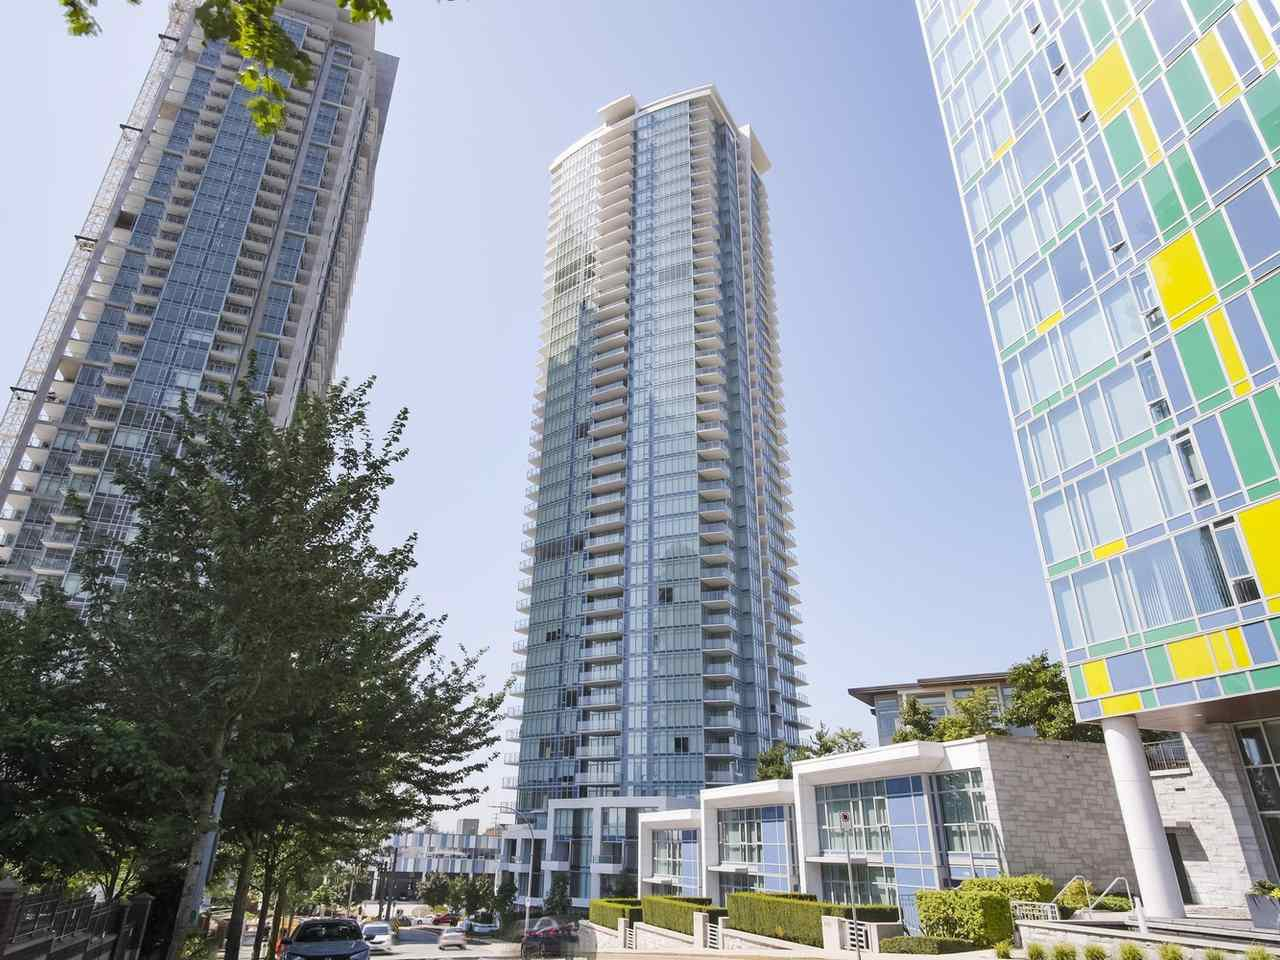 """Main Photo: 1502 1788 GILMORE Avenue in Burnaby: Brentwood Park Condo for sale in """"Escala"""" (Burnaby North)  : MLS®# R2395236"""